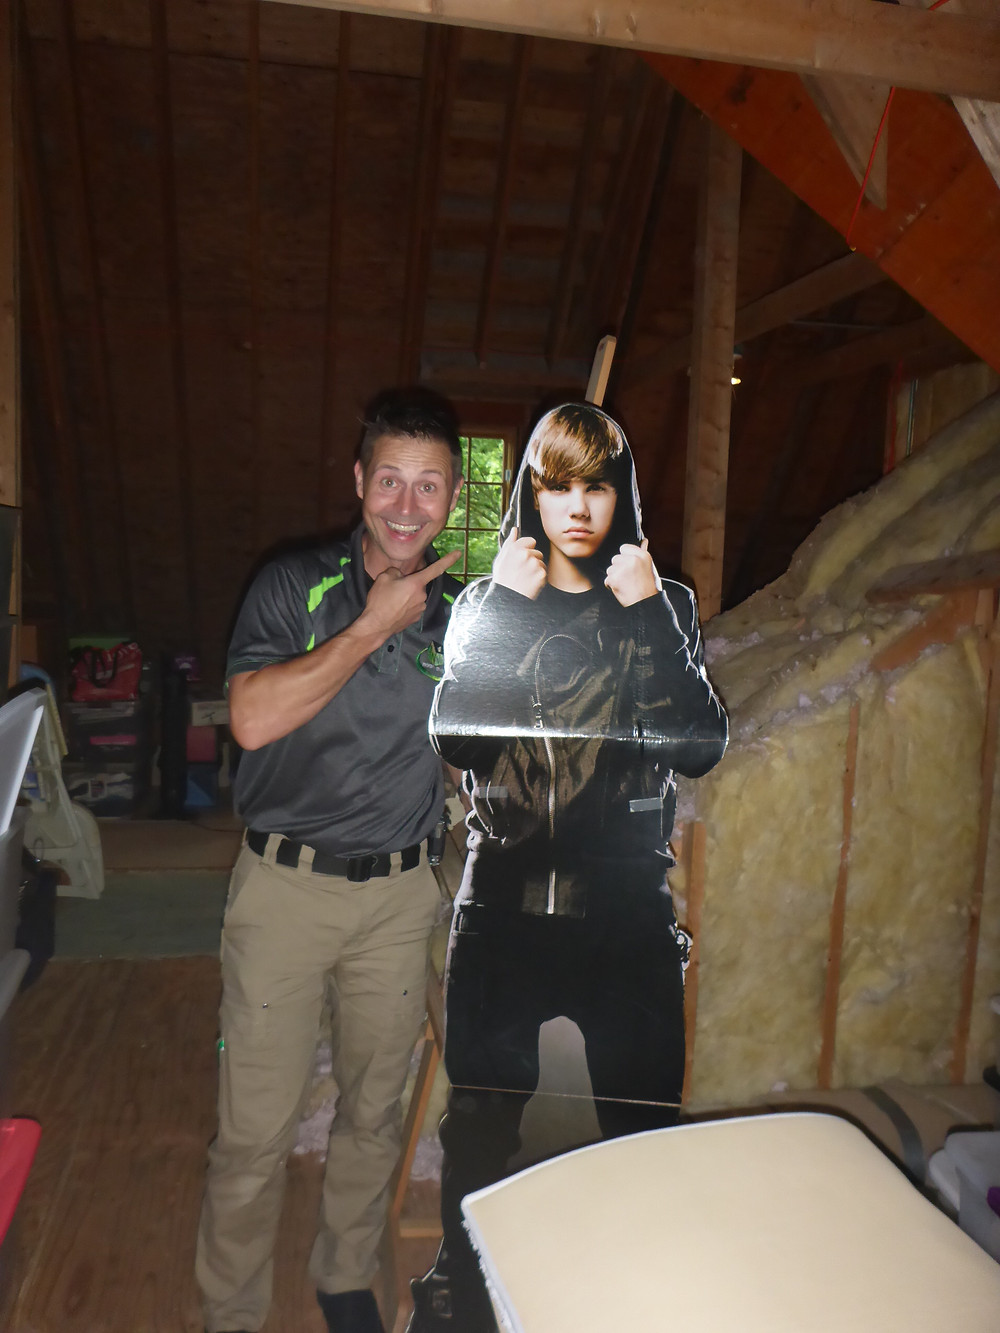 home inspection naperville il, insight property services home inspections, joe konopacki home inspector, funny home inspector finds